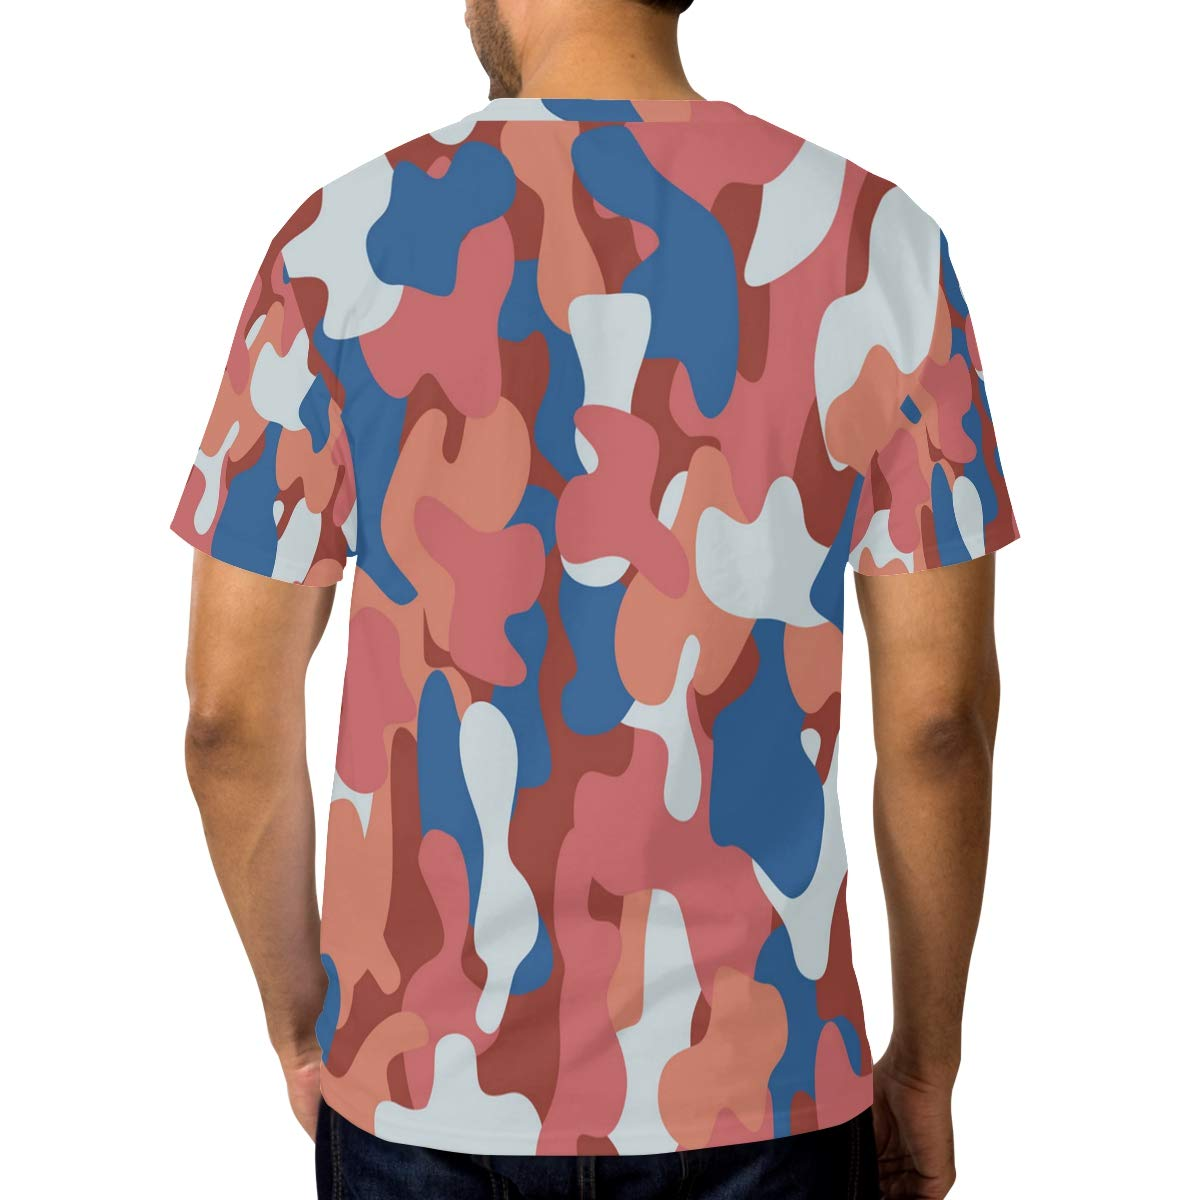 Horatiood Huberyyd Camo Orane White Blue Mens T Shirts Graphic Funny Body Print Short T-Shirt Unisex Pullover Blouse